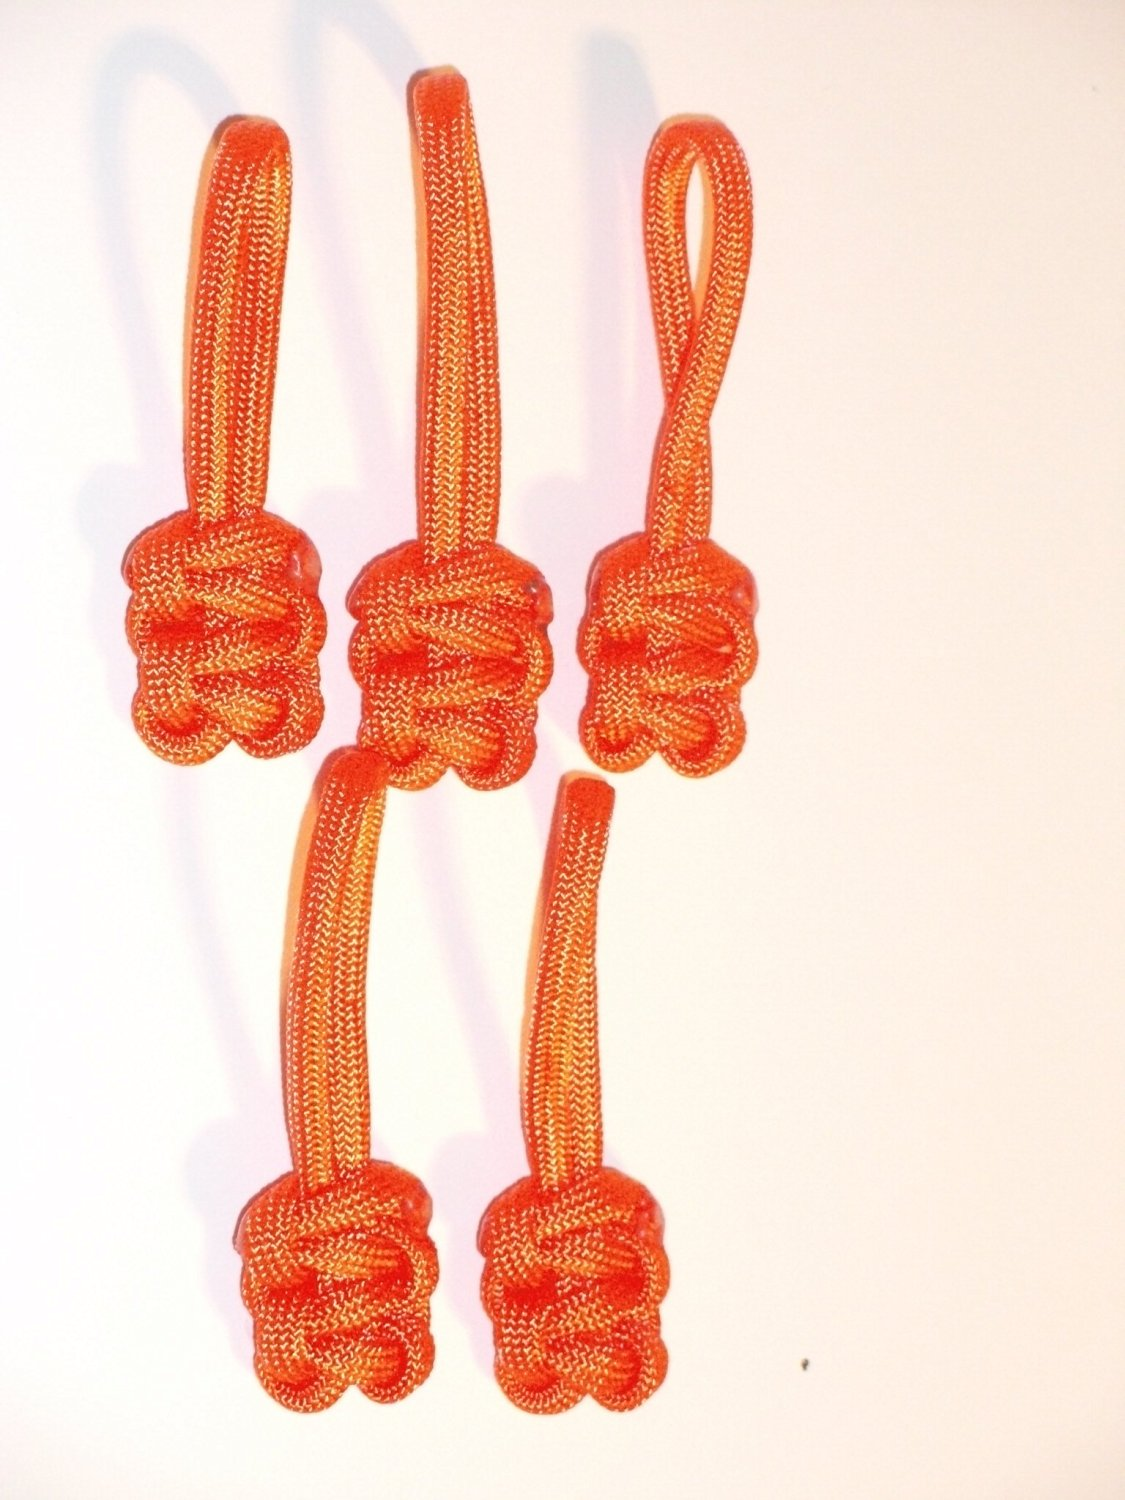 RedVex Paracord Zipper Pulls / Lanyards - Lot of 5 - ~2.5 - Orange